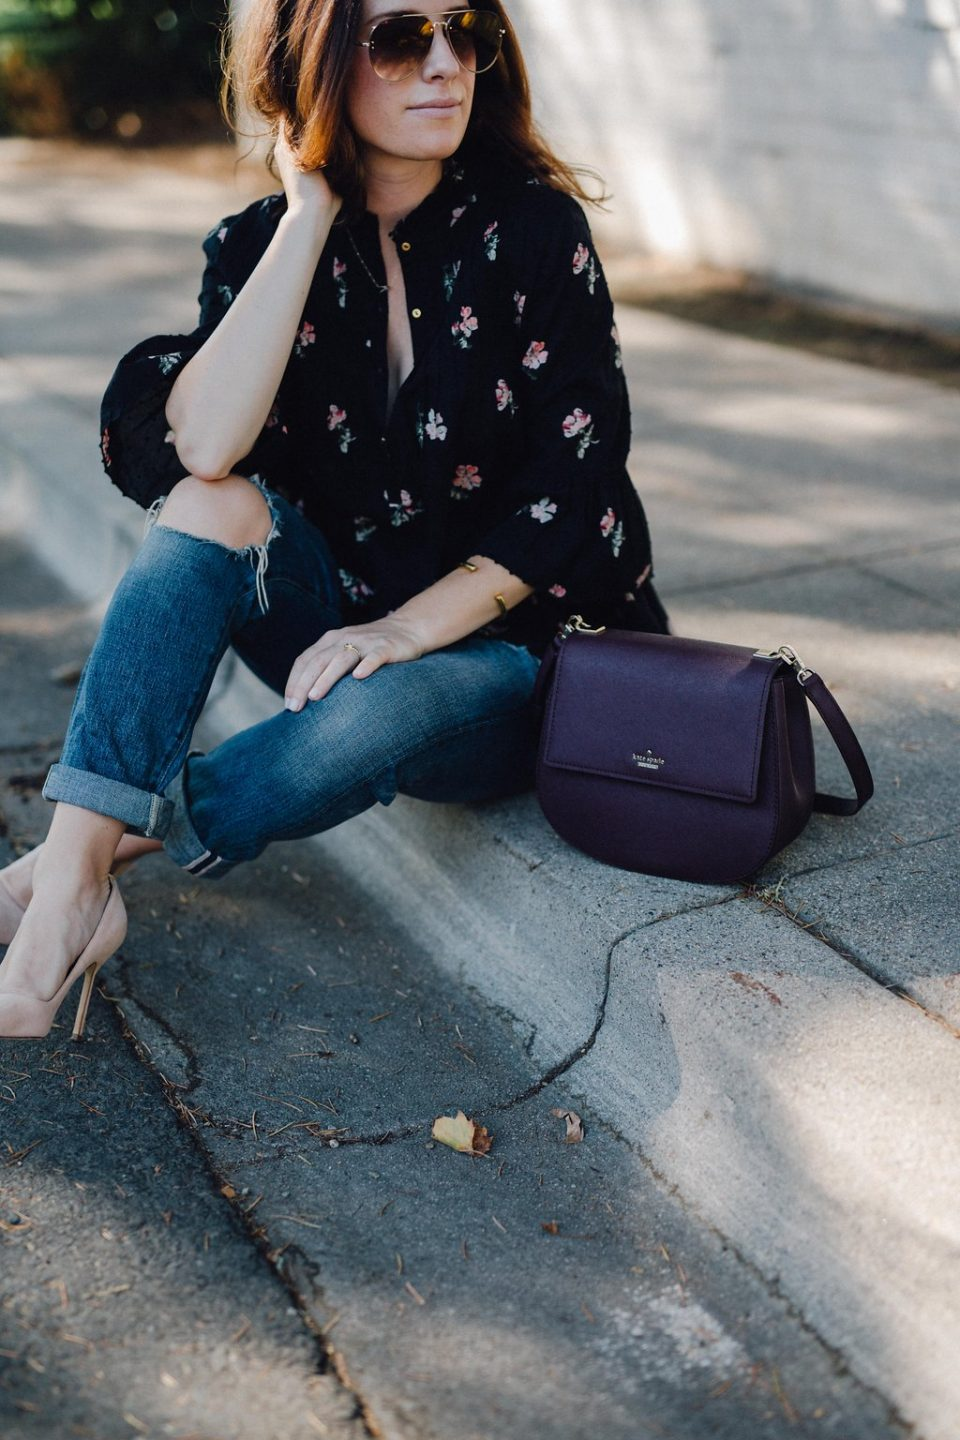 accessory update: burgundy bag